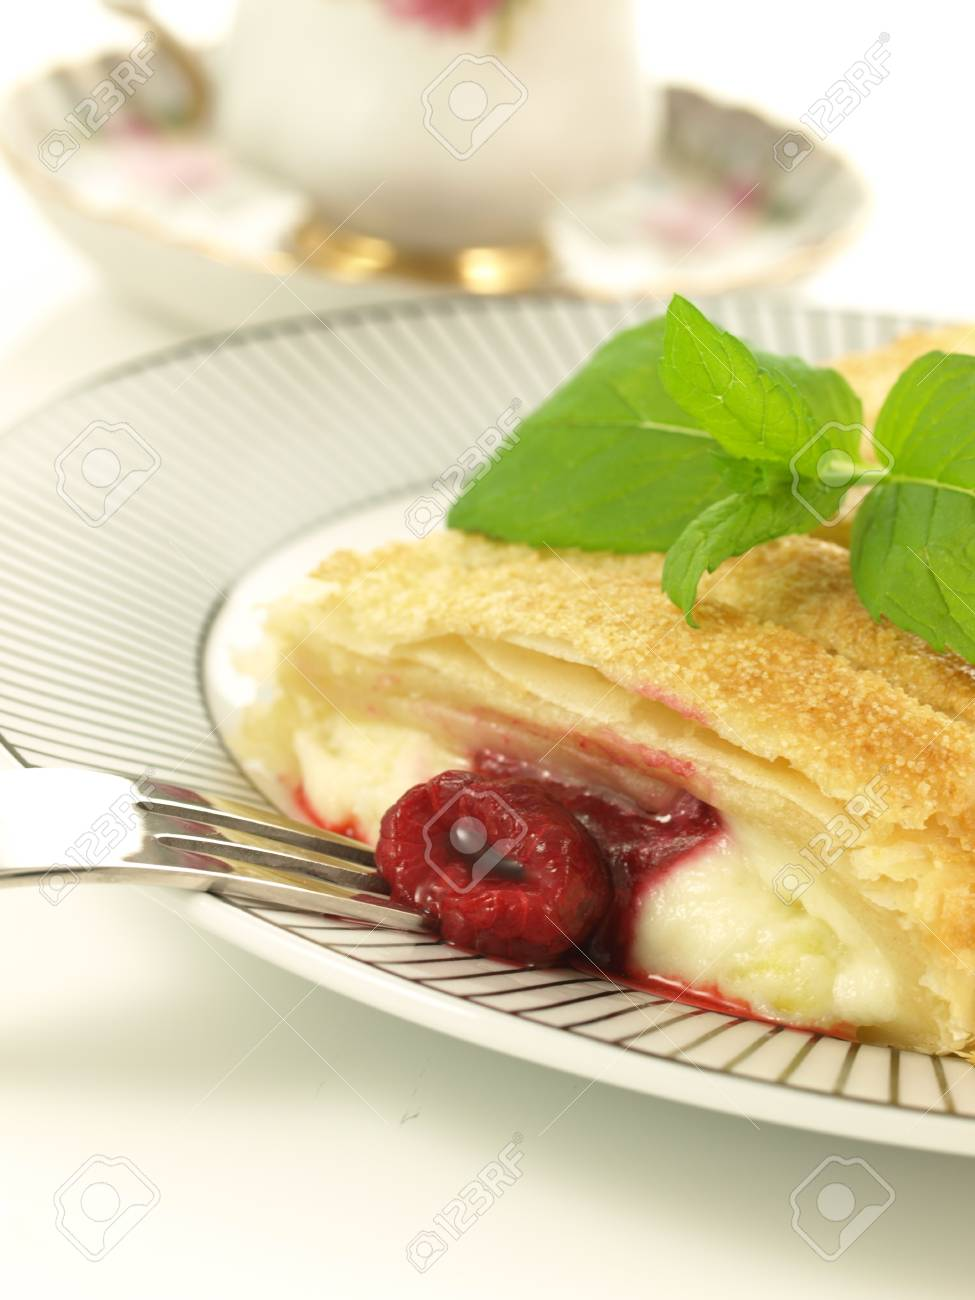 Raspberry crunchy strudel for a dessert, closeup Stock Photo - 13320265